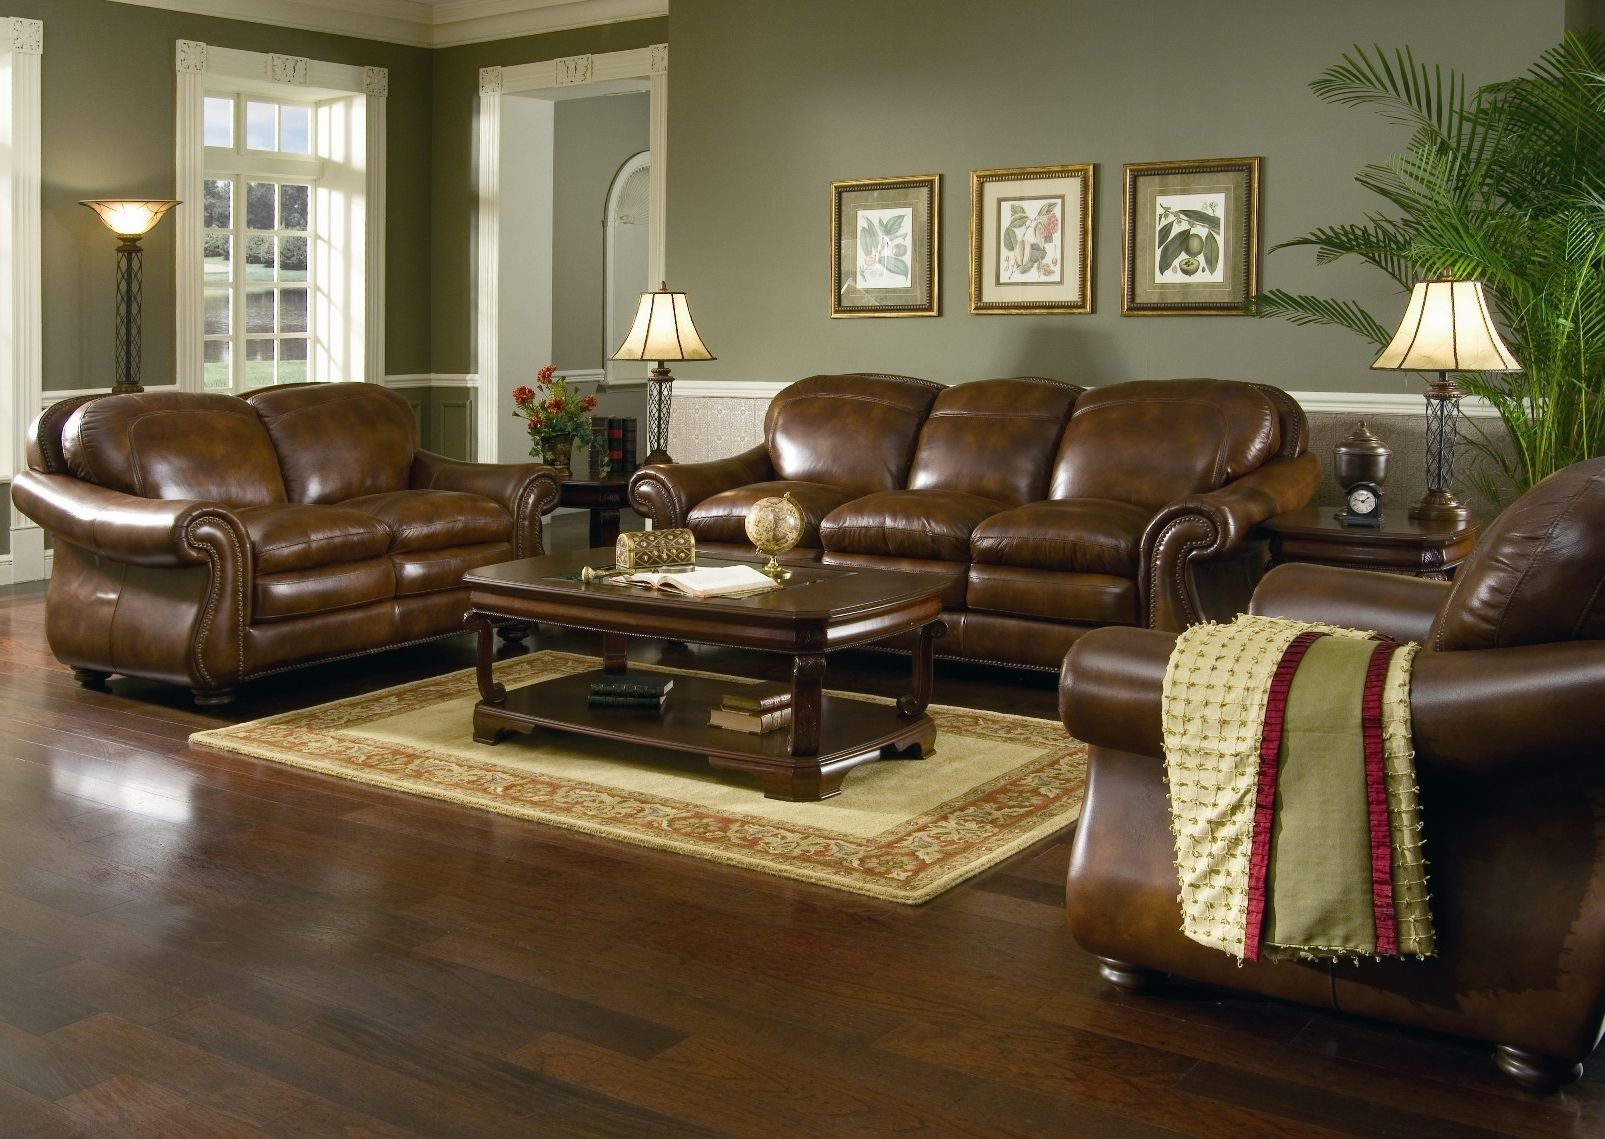 Leather Couch Living Room The 25 Best Ideas About Brown Leather Sofa Bed On Pinterest